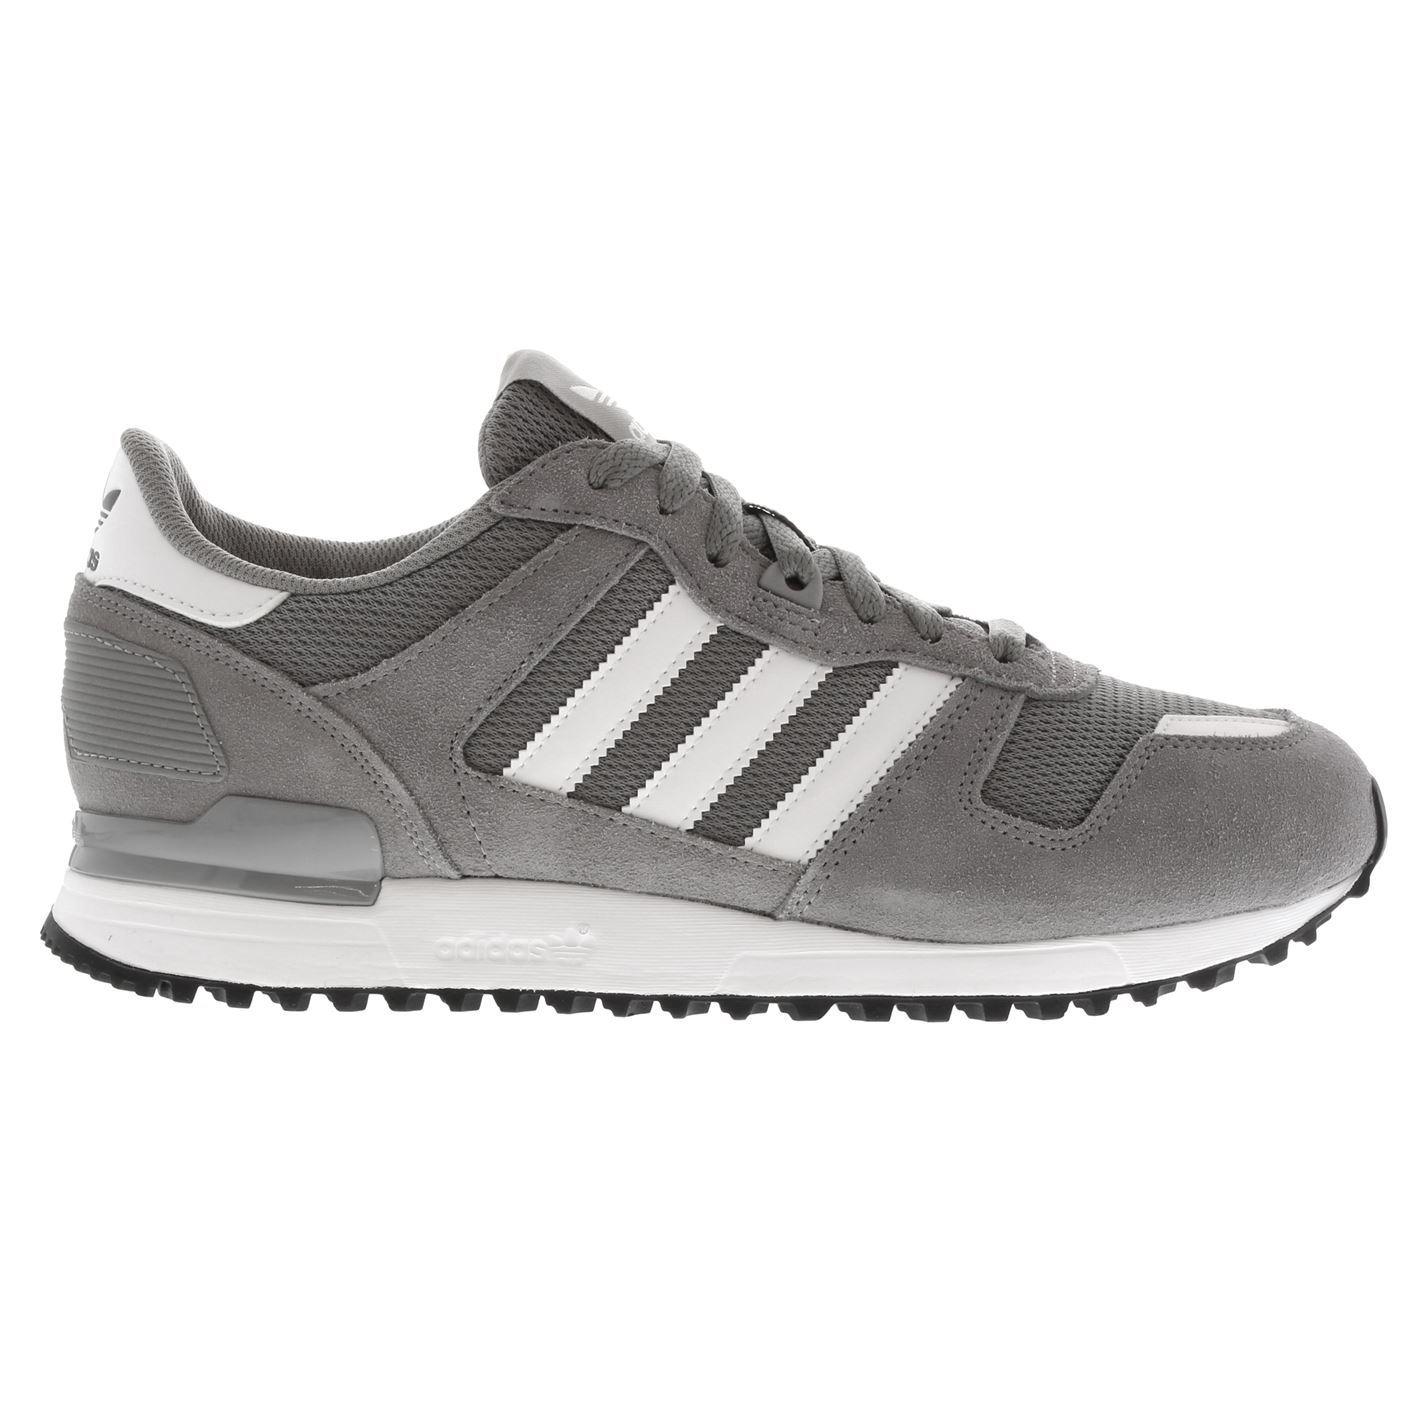 cheap adidas zx trainers methodology requirements for law